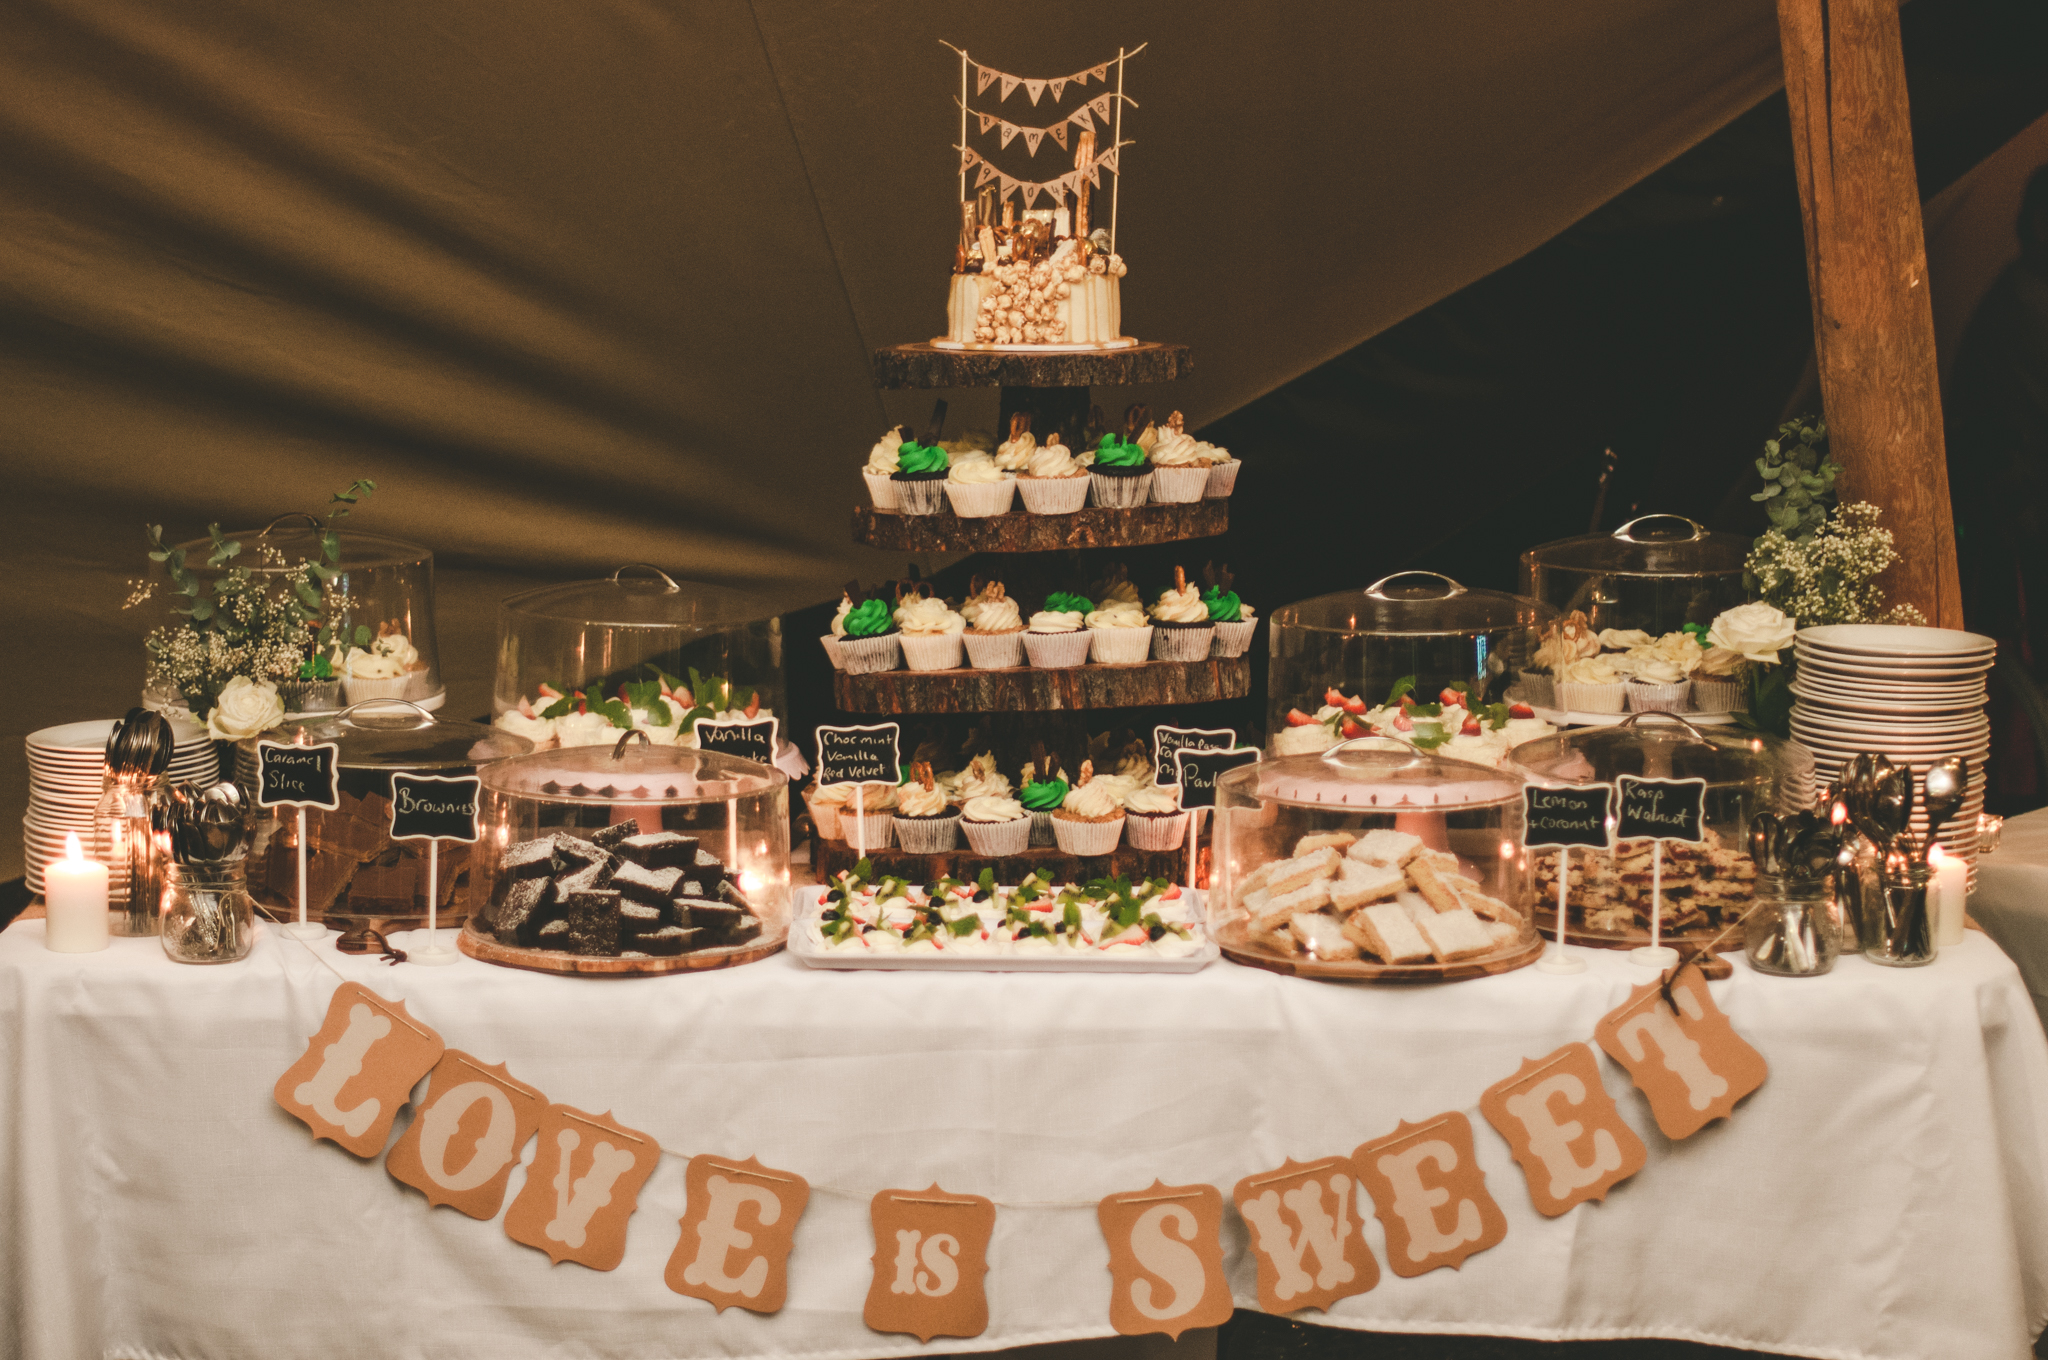 tipi wedding, gold coast, marquee hire, tipi hire, event hire, gold coast weddings, dessert, catering